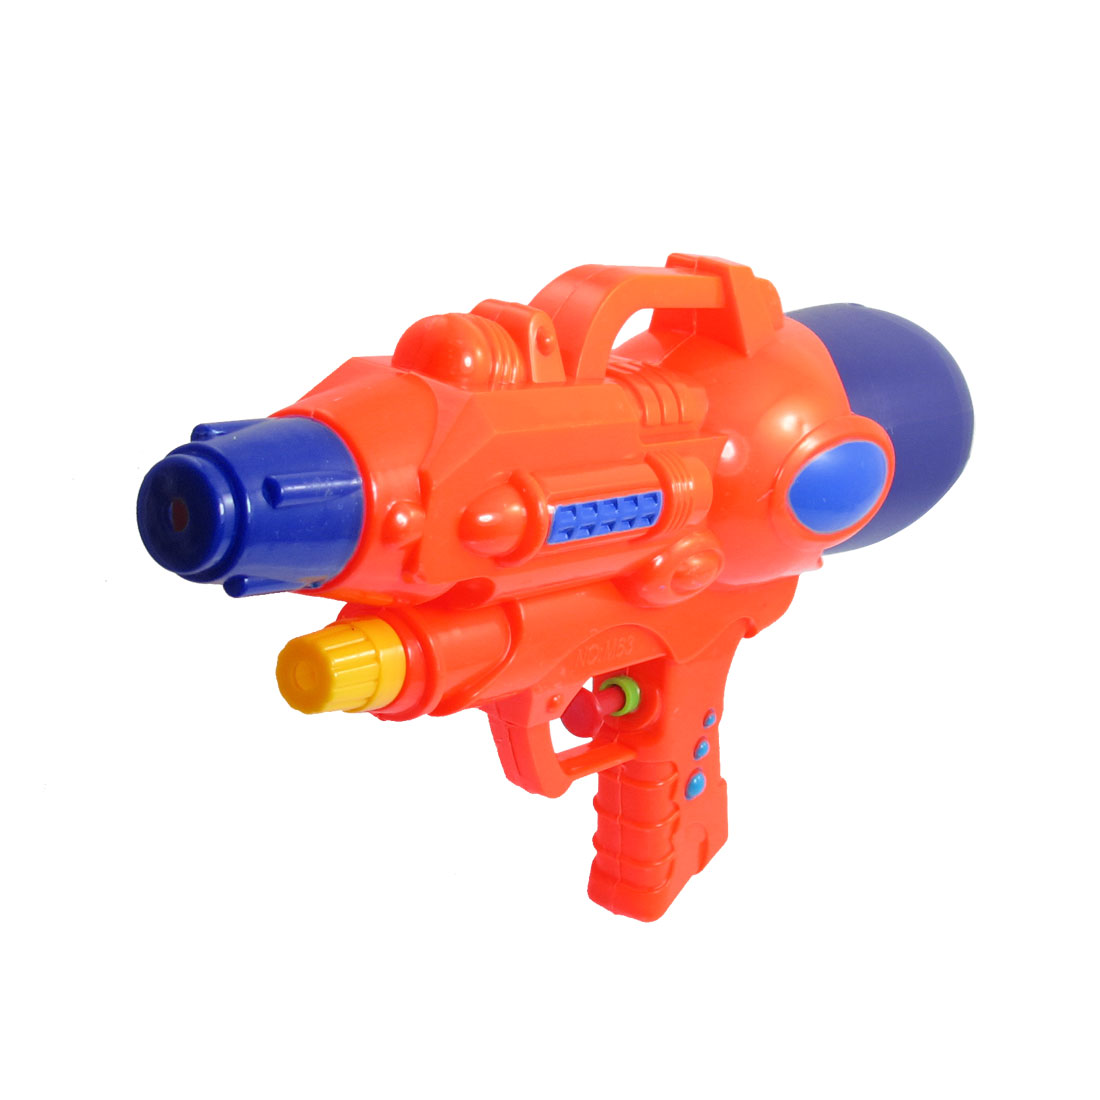 "10.2"" Length Purple Orange Plastic Water Spray Gun Squirt Toy for Children"